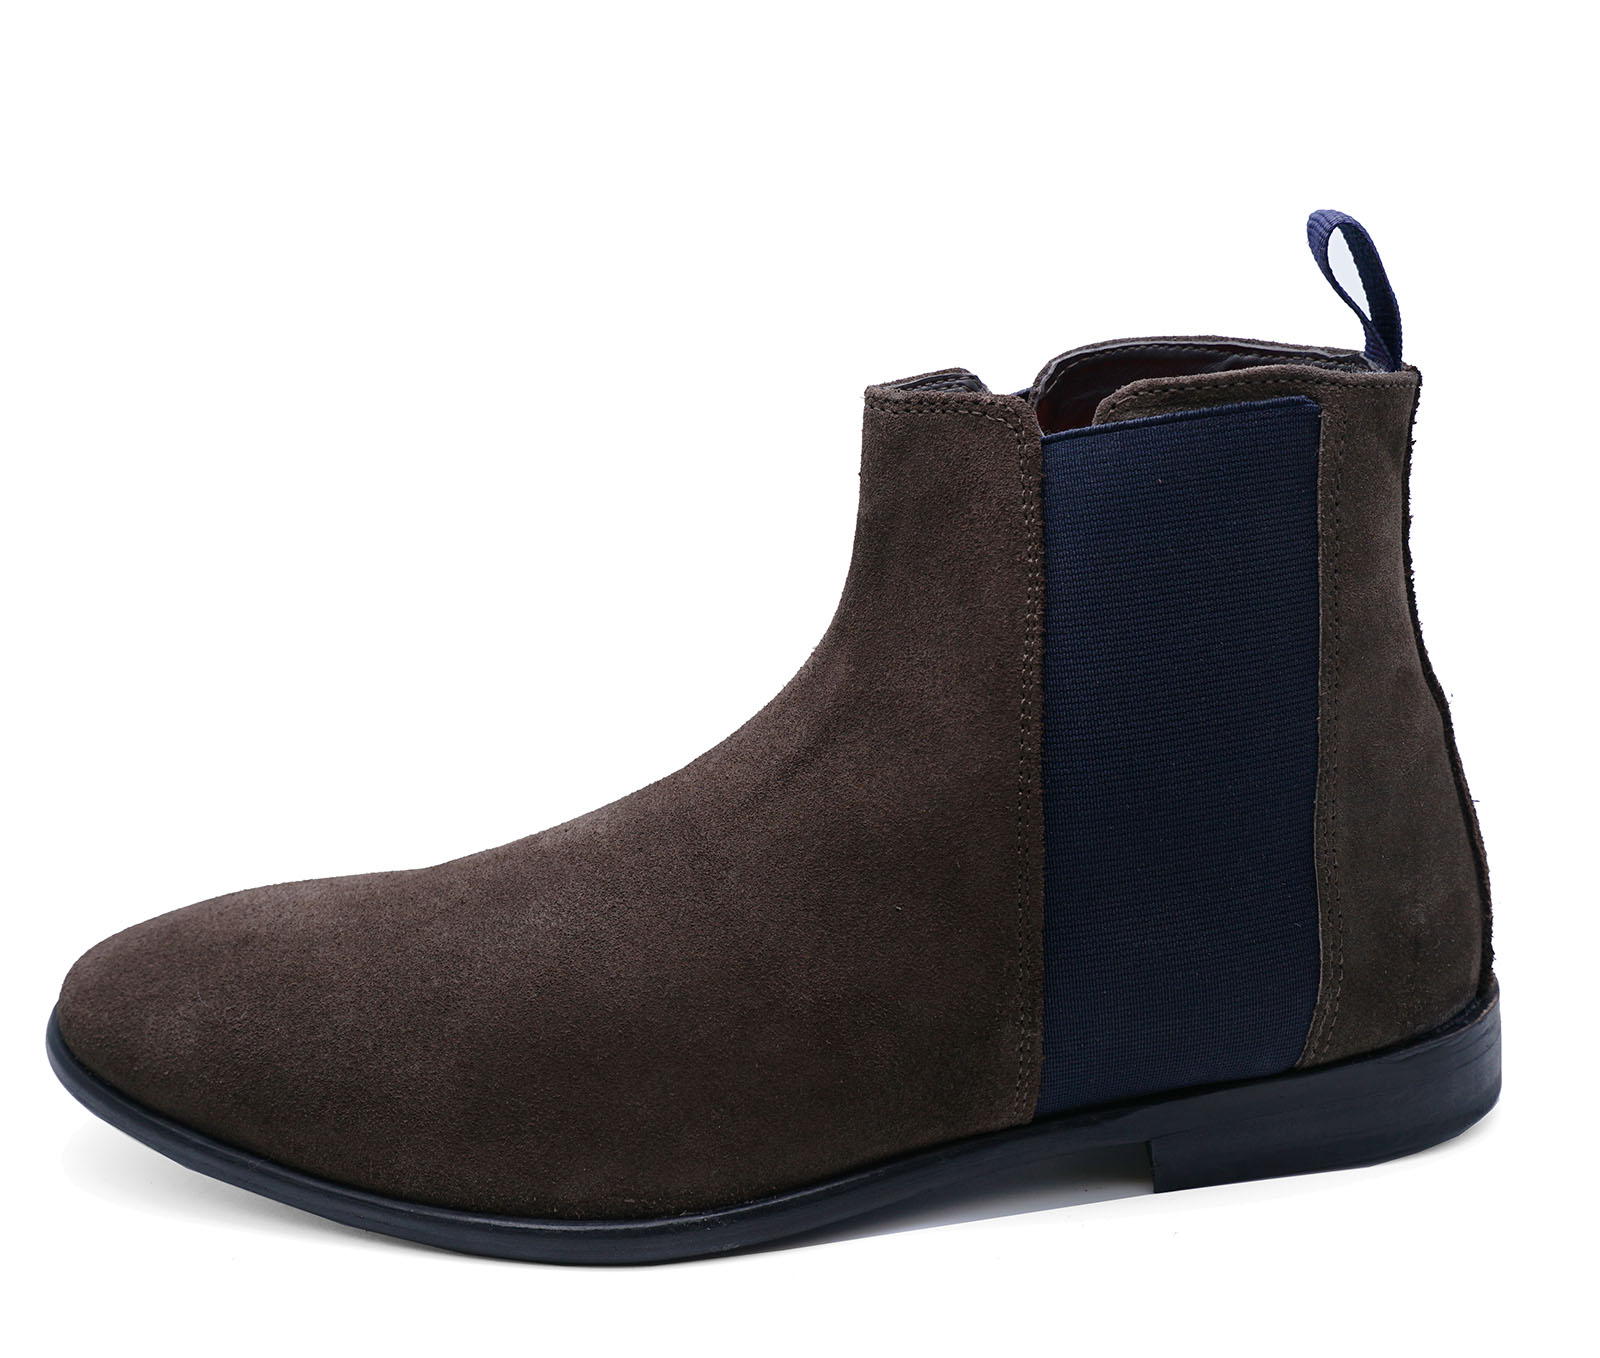 Men's suede Chelsea boots are perfect for a slightly casual look, with faux suede offering a broader range of colours, the boot will look great with skinny jeans, trousers or a suit. Simply mix the Chelsea boot with jeans .